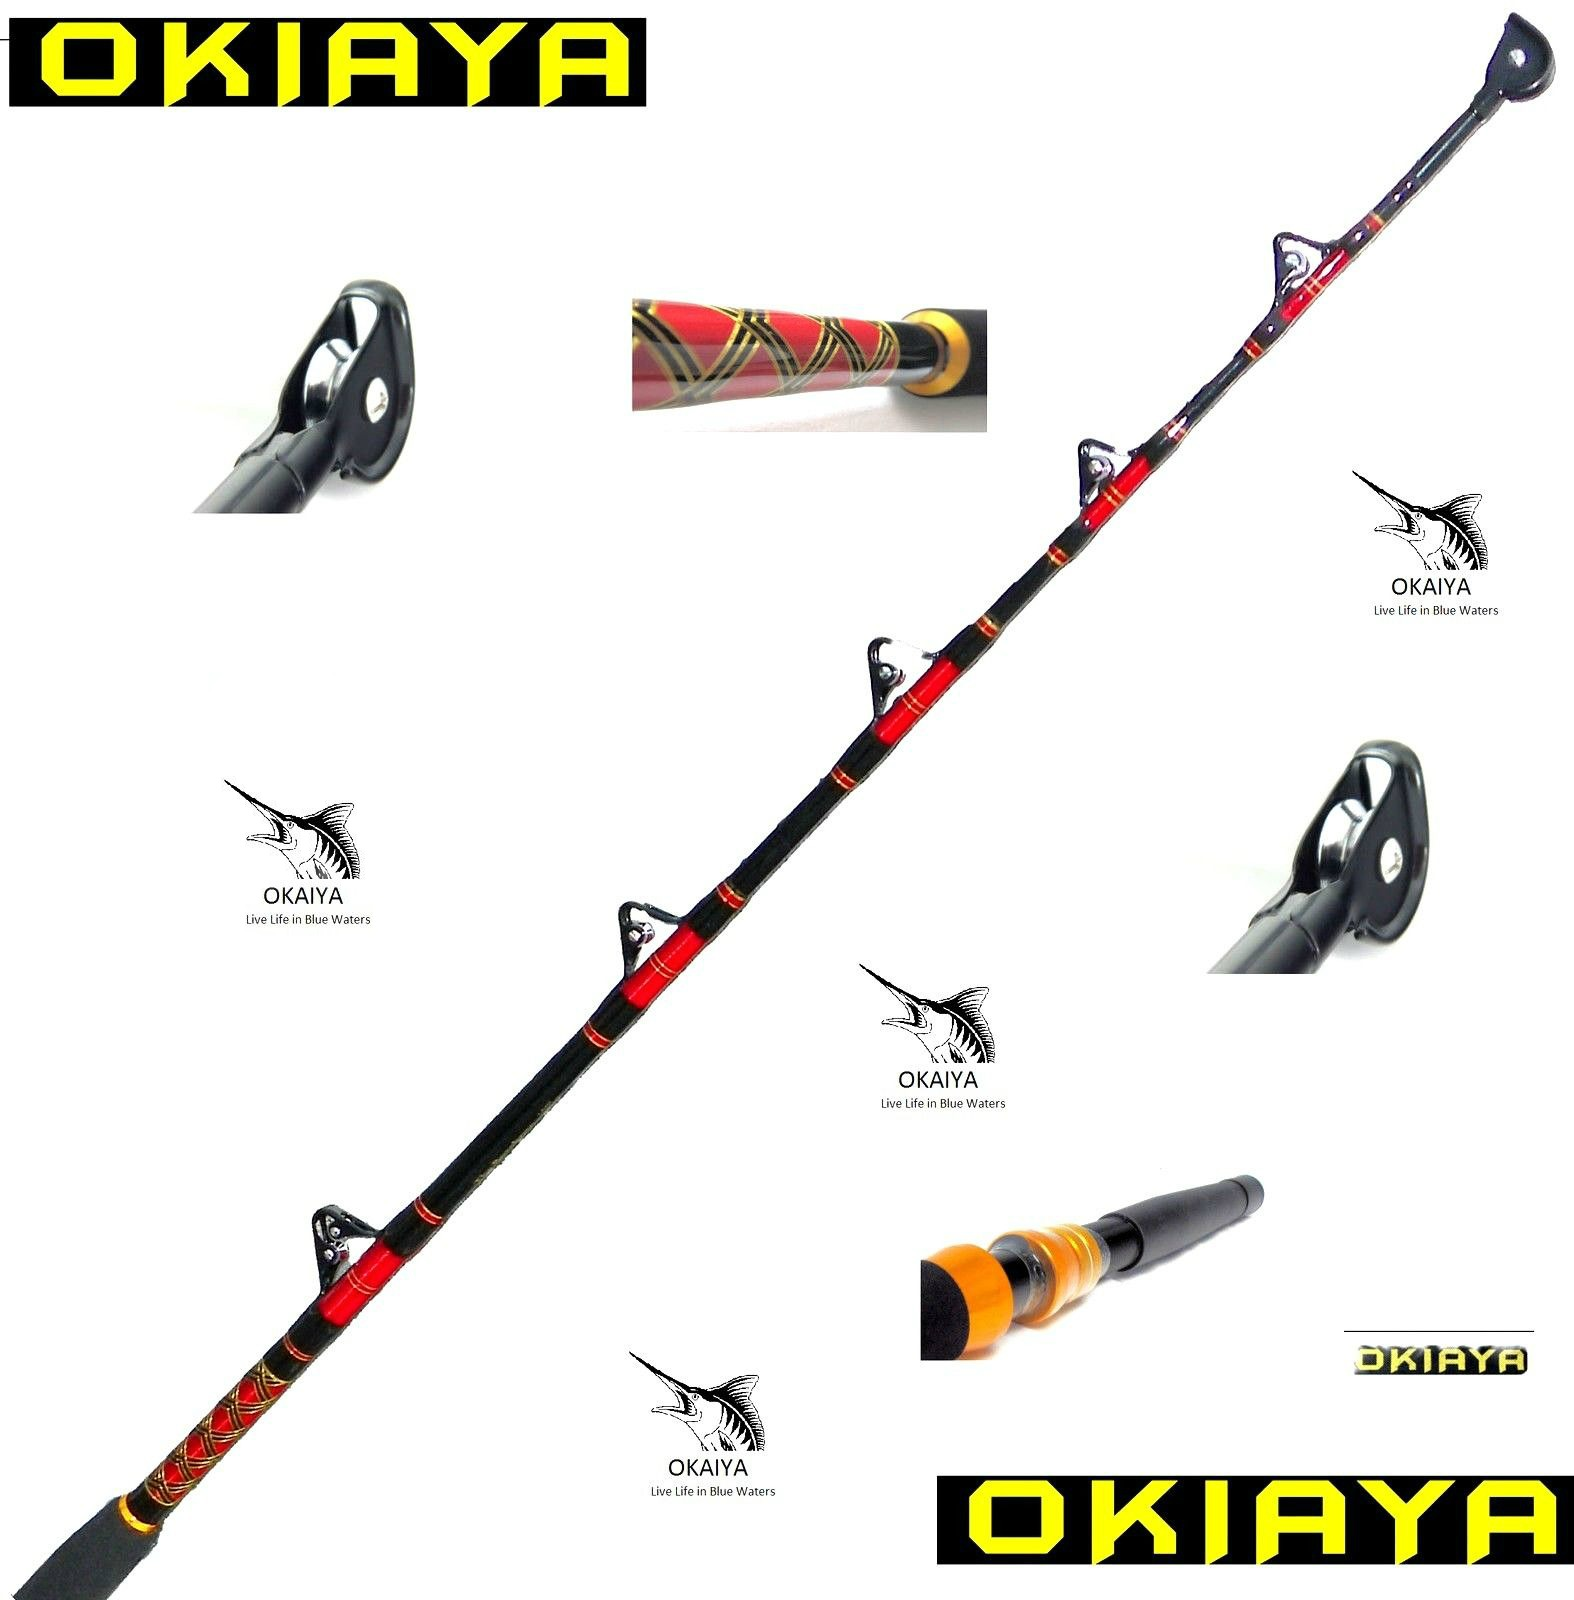 Okiaya saltwater fishing rods 80 130lb for Fishing pole guides